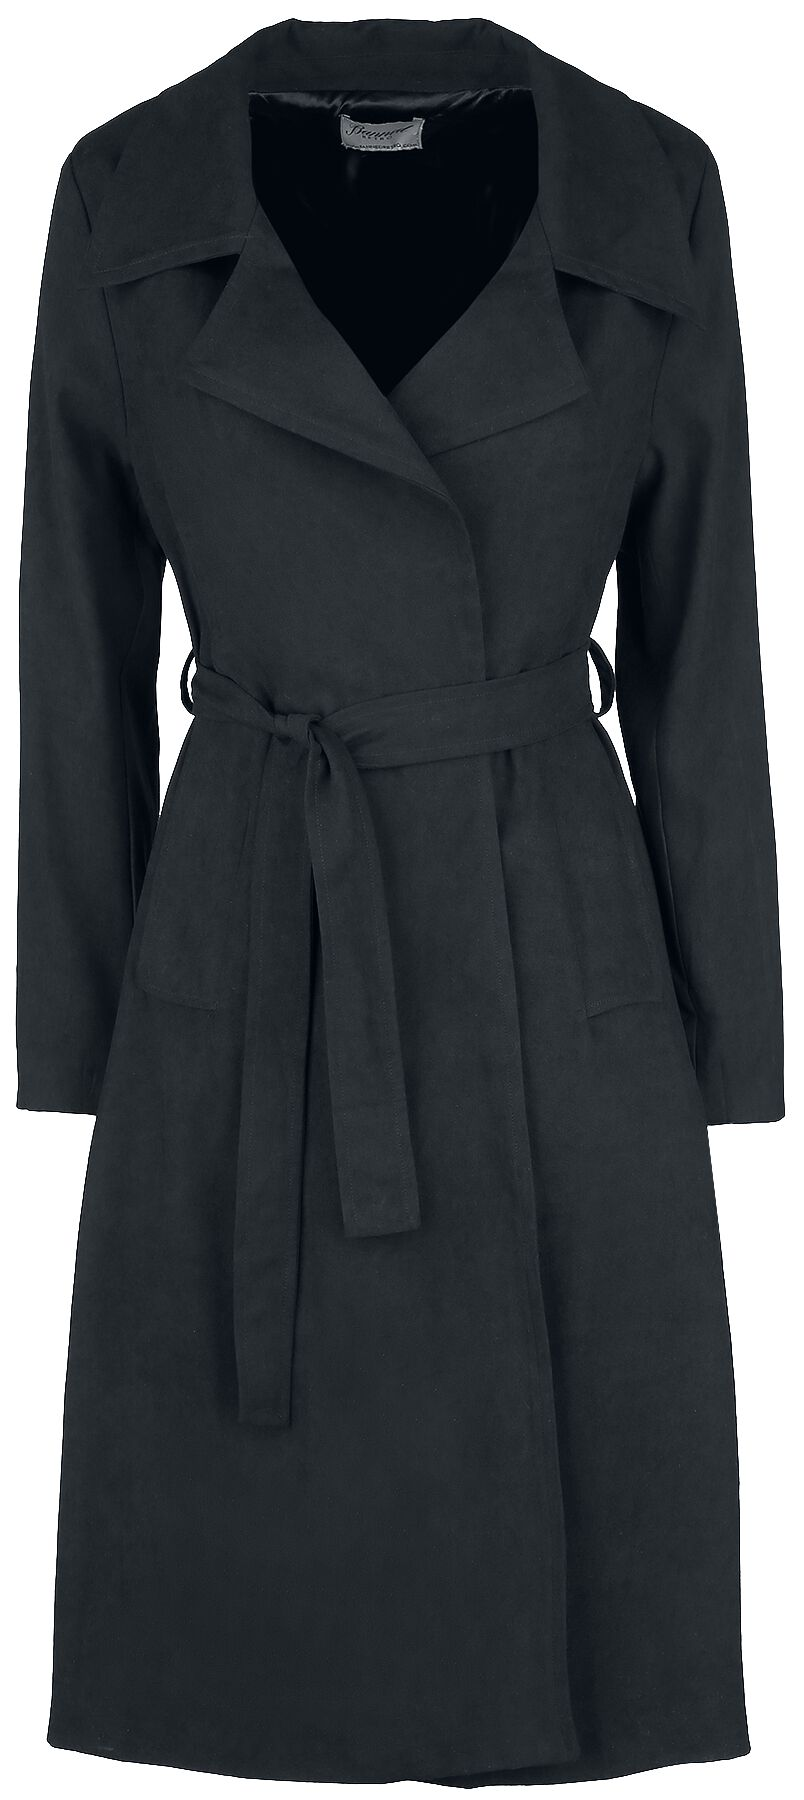 Image of Banned Retro Tie Front Trench Cappotto donna nero